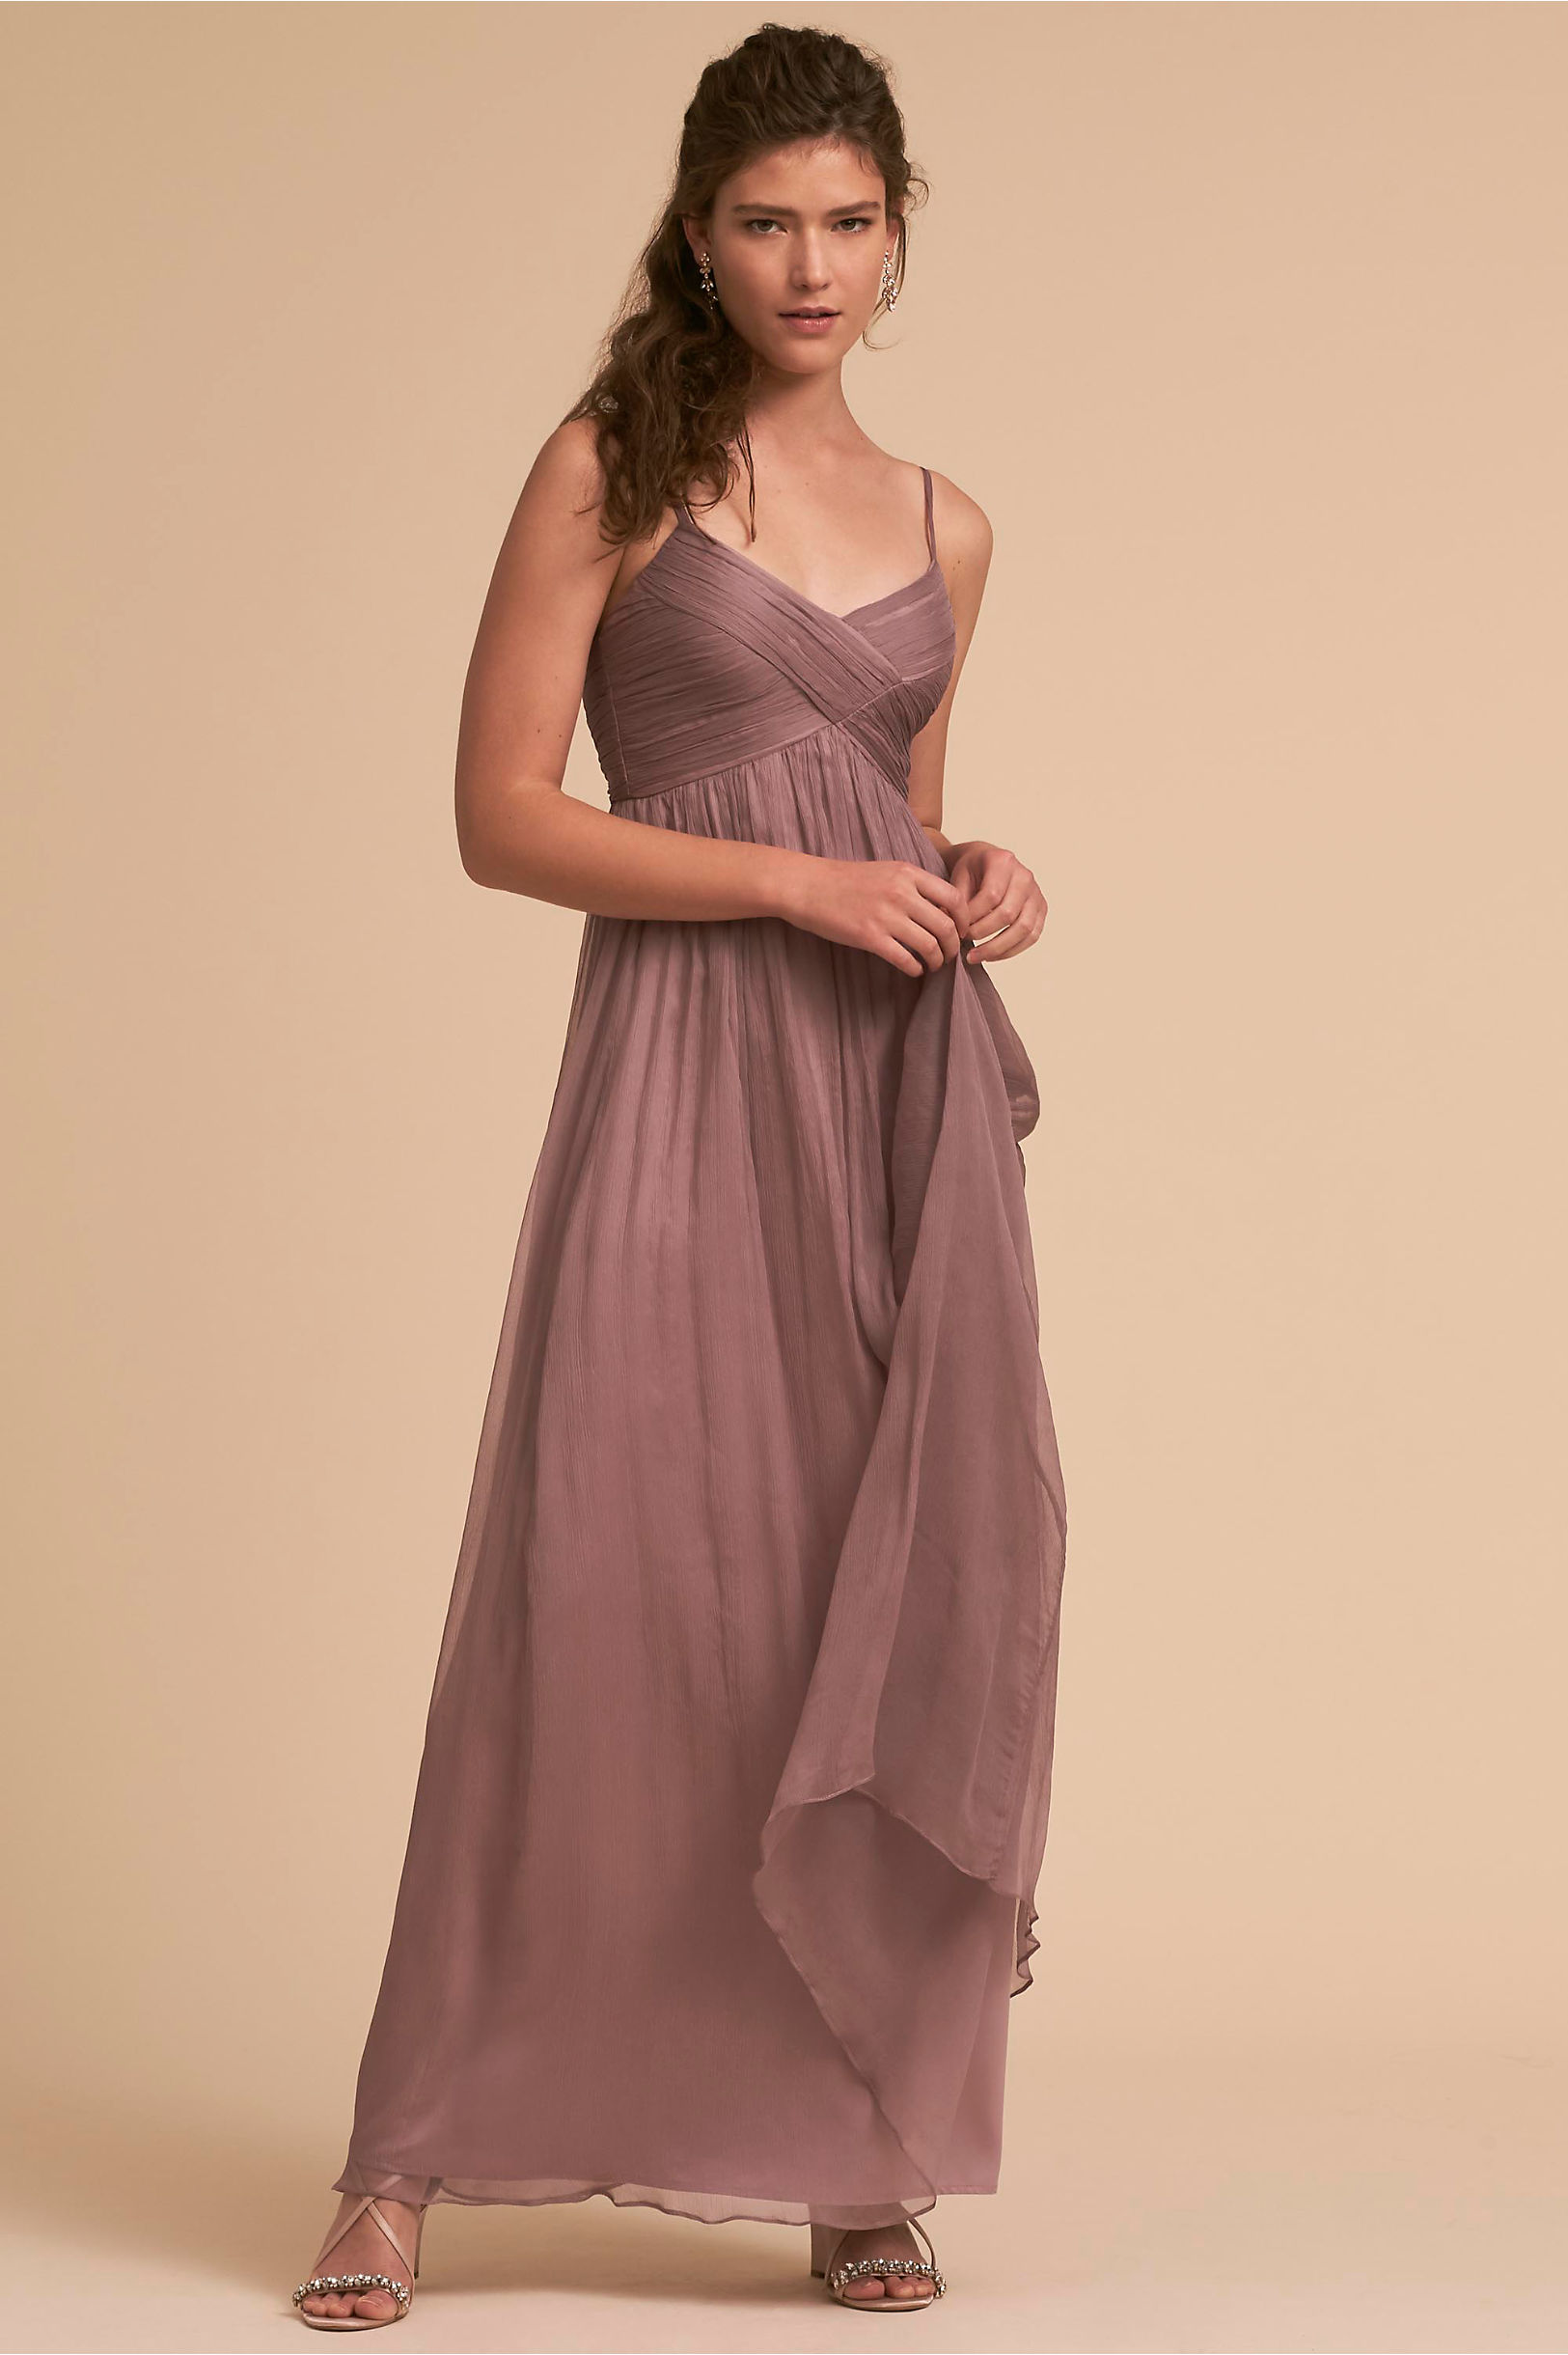 Bridesmaid dresses gowns bhldn brigitte dress brigitte dress ombrellifo Image collections